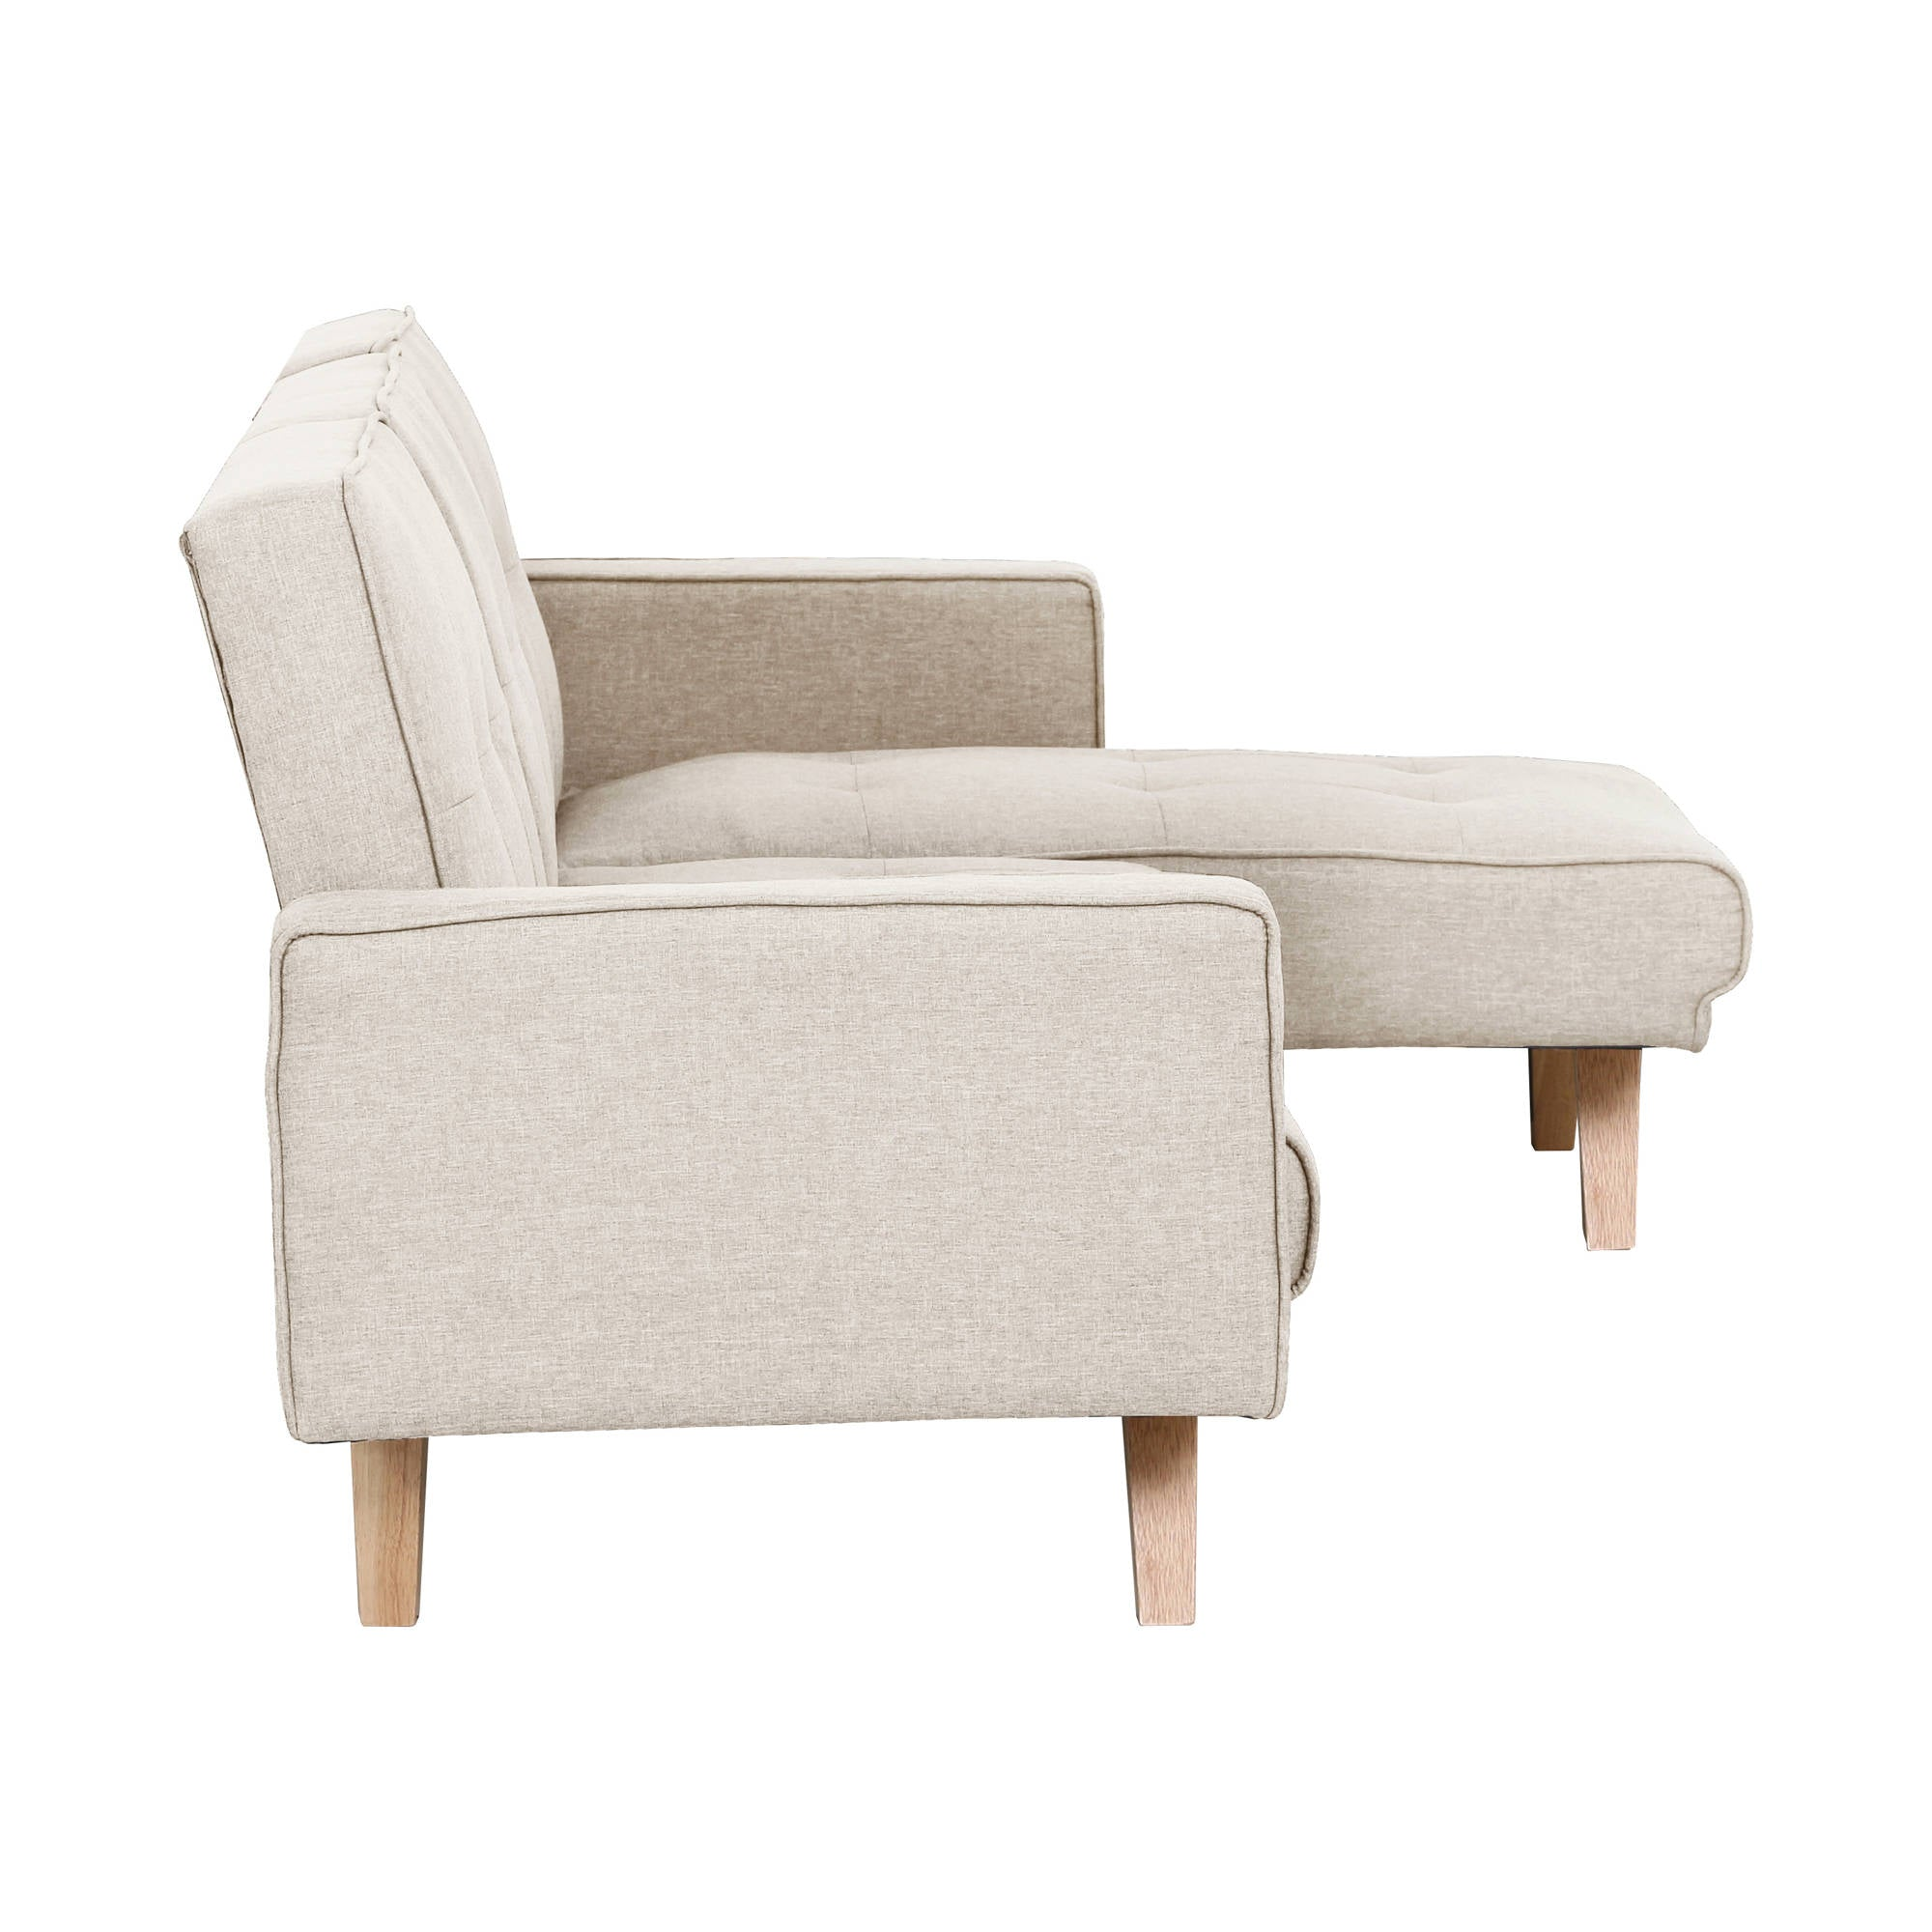 Robertson Corner Sofa Bed in Beige - Ezzo